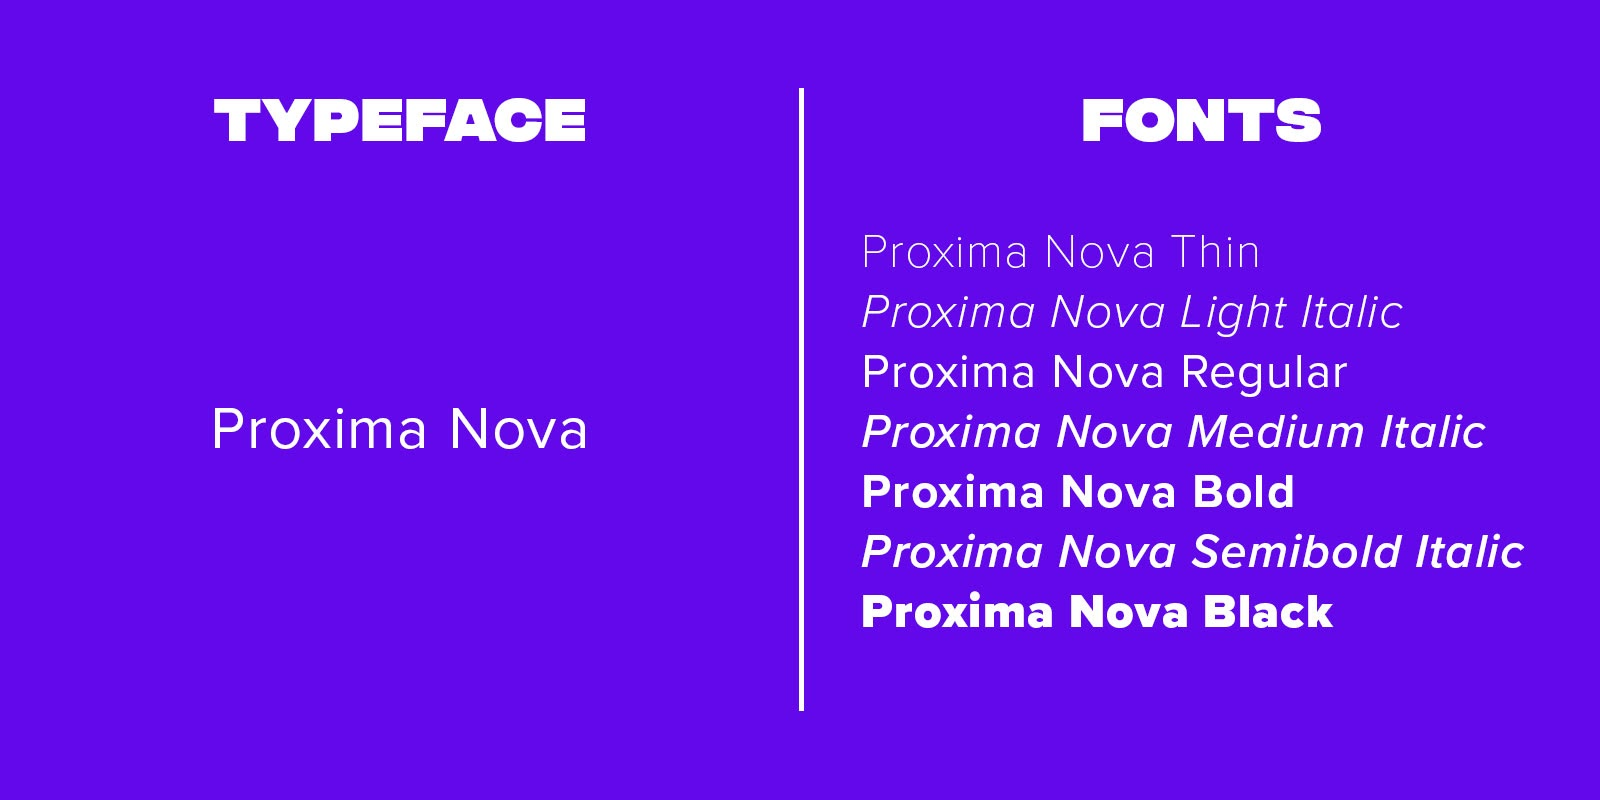 Proxima Nova is a flexible typeface that encompasses many different fonts.